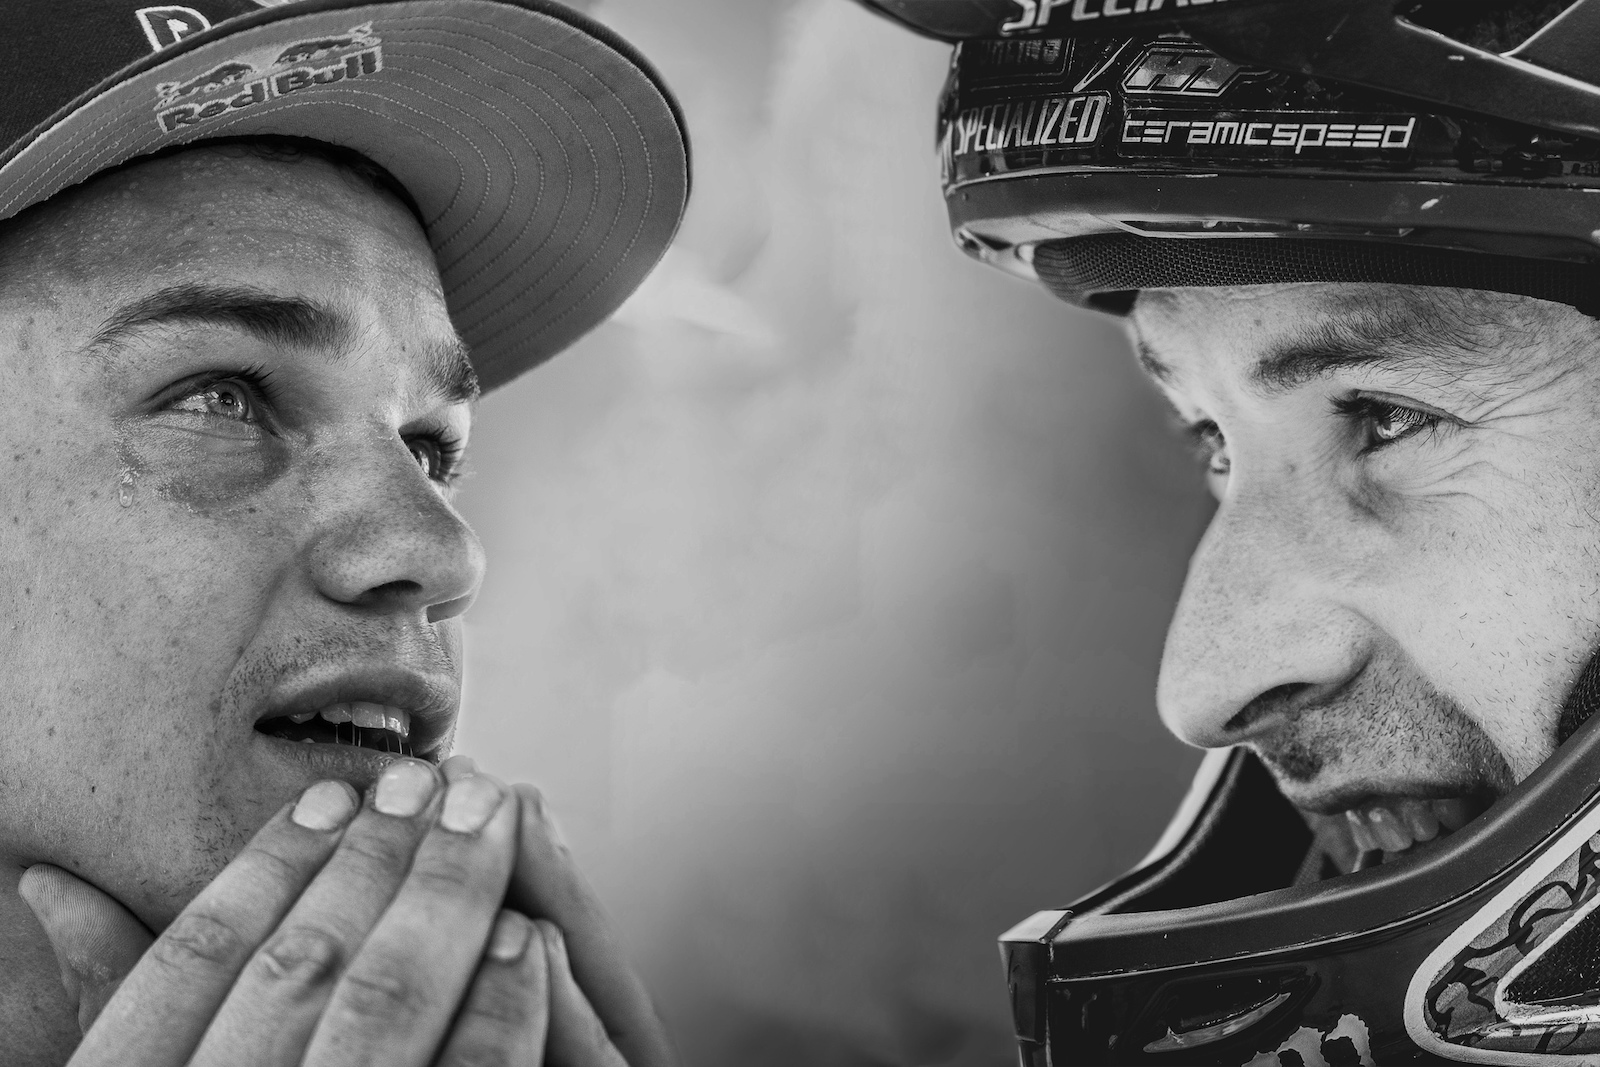 Exclusive: Richie Rude & Jared Graves Failed Drug Test at EWS France